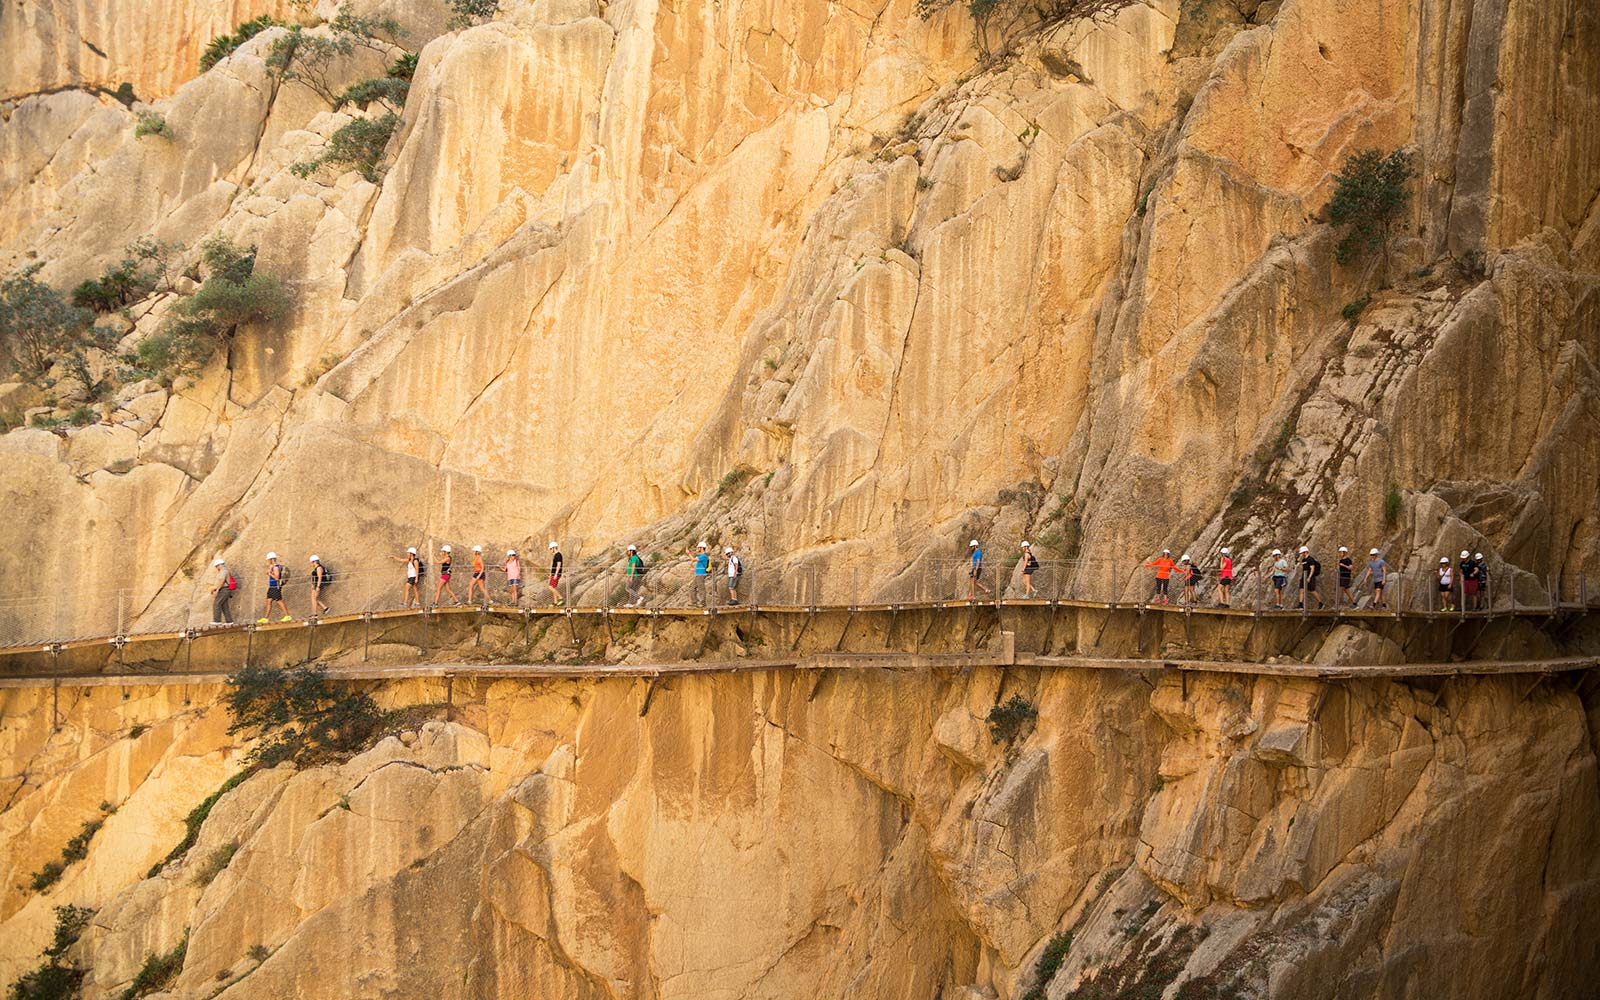 The world's most dangerous path is reopening to hikers